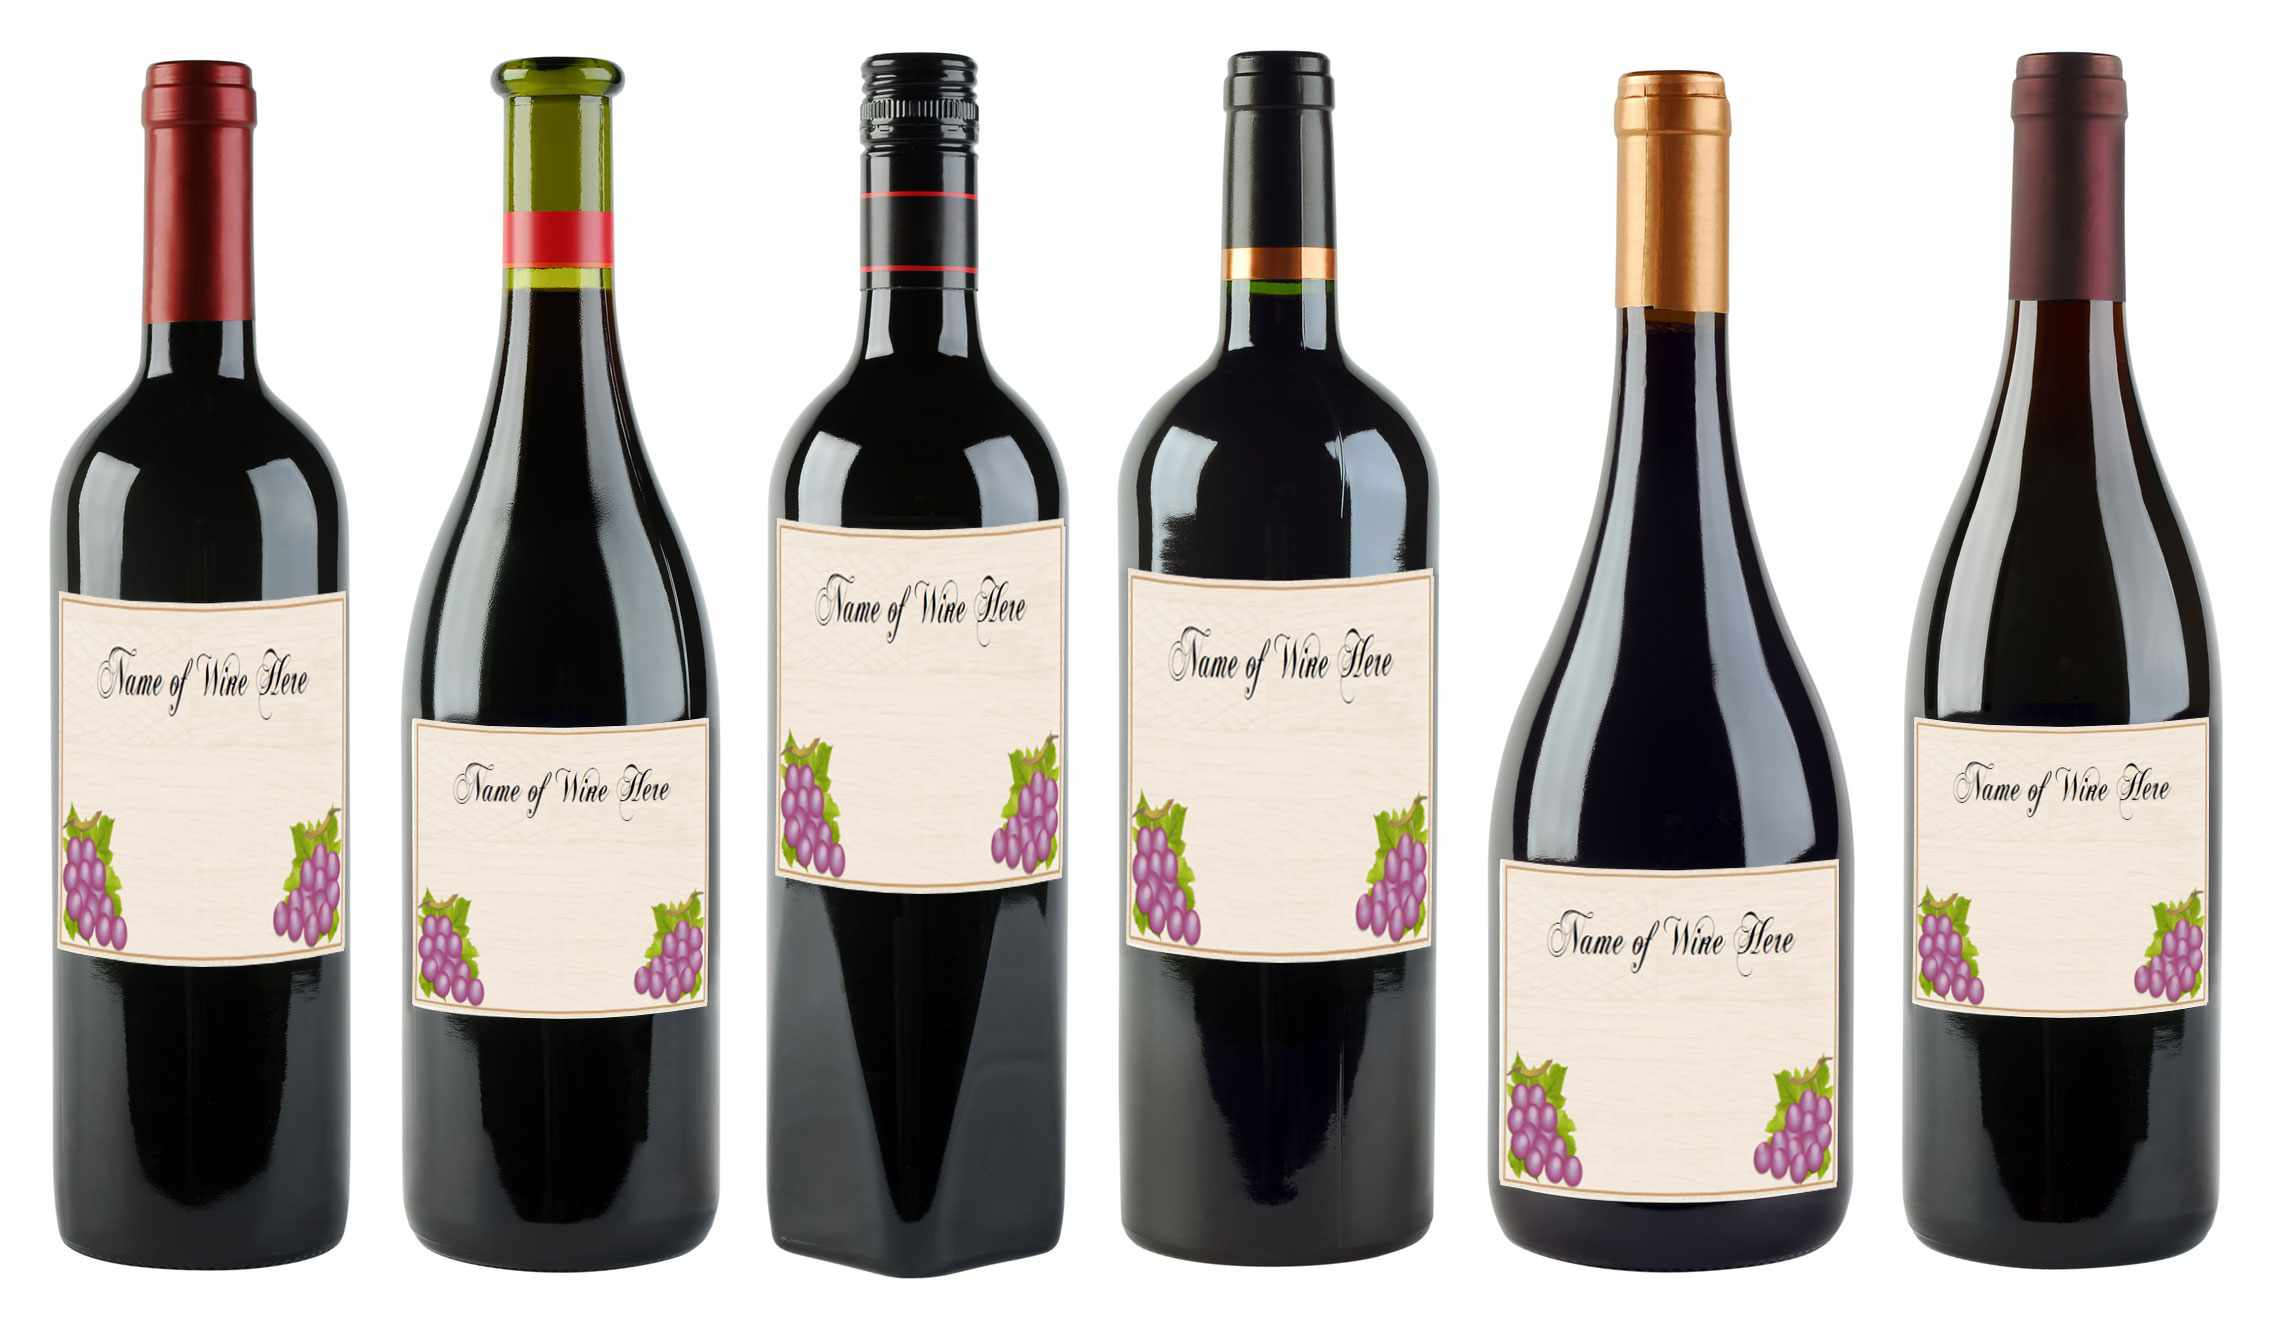 6 bottles of wine in various shapes